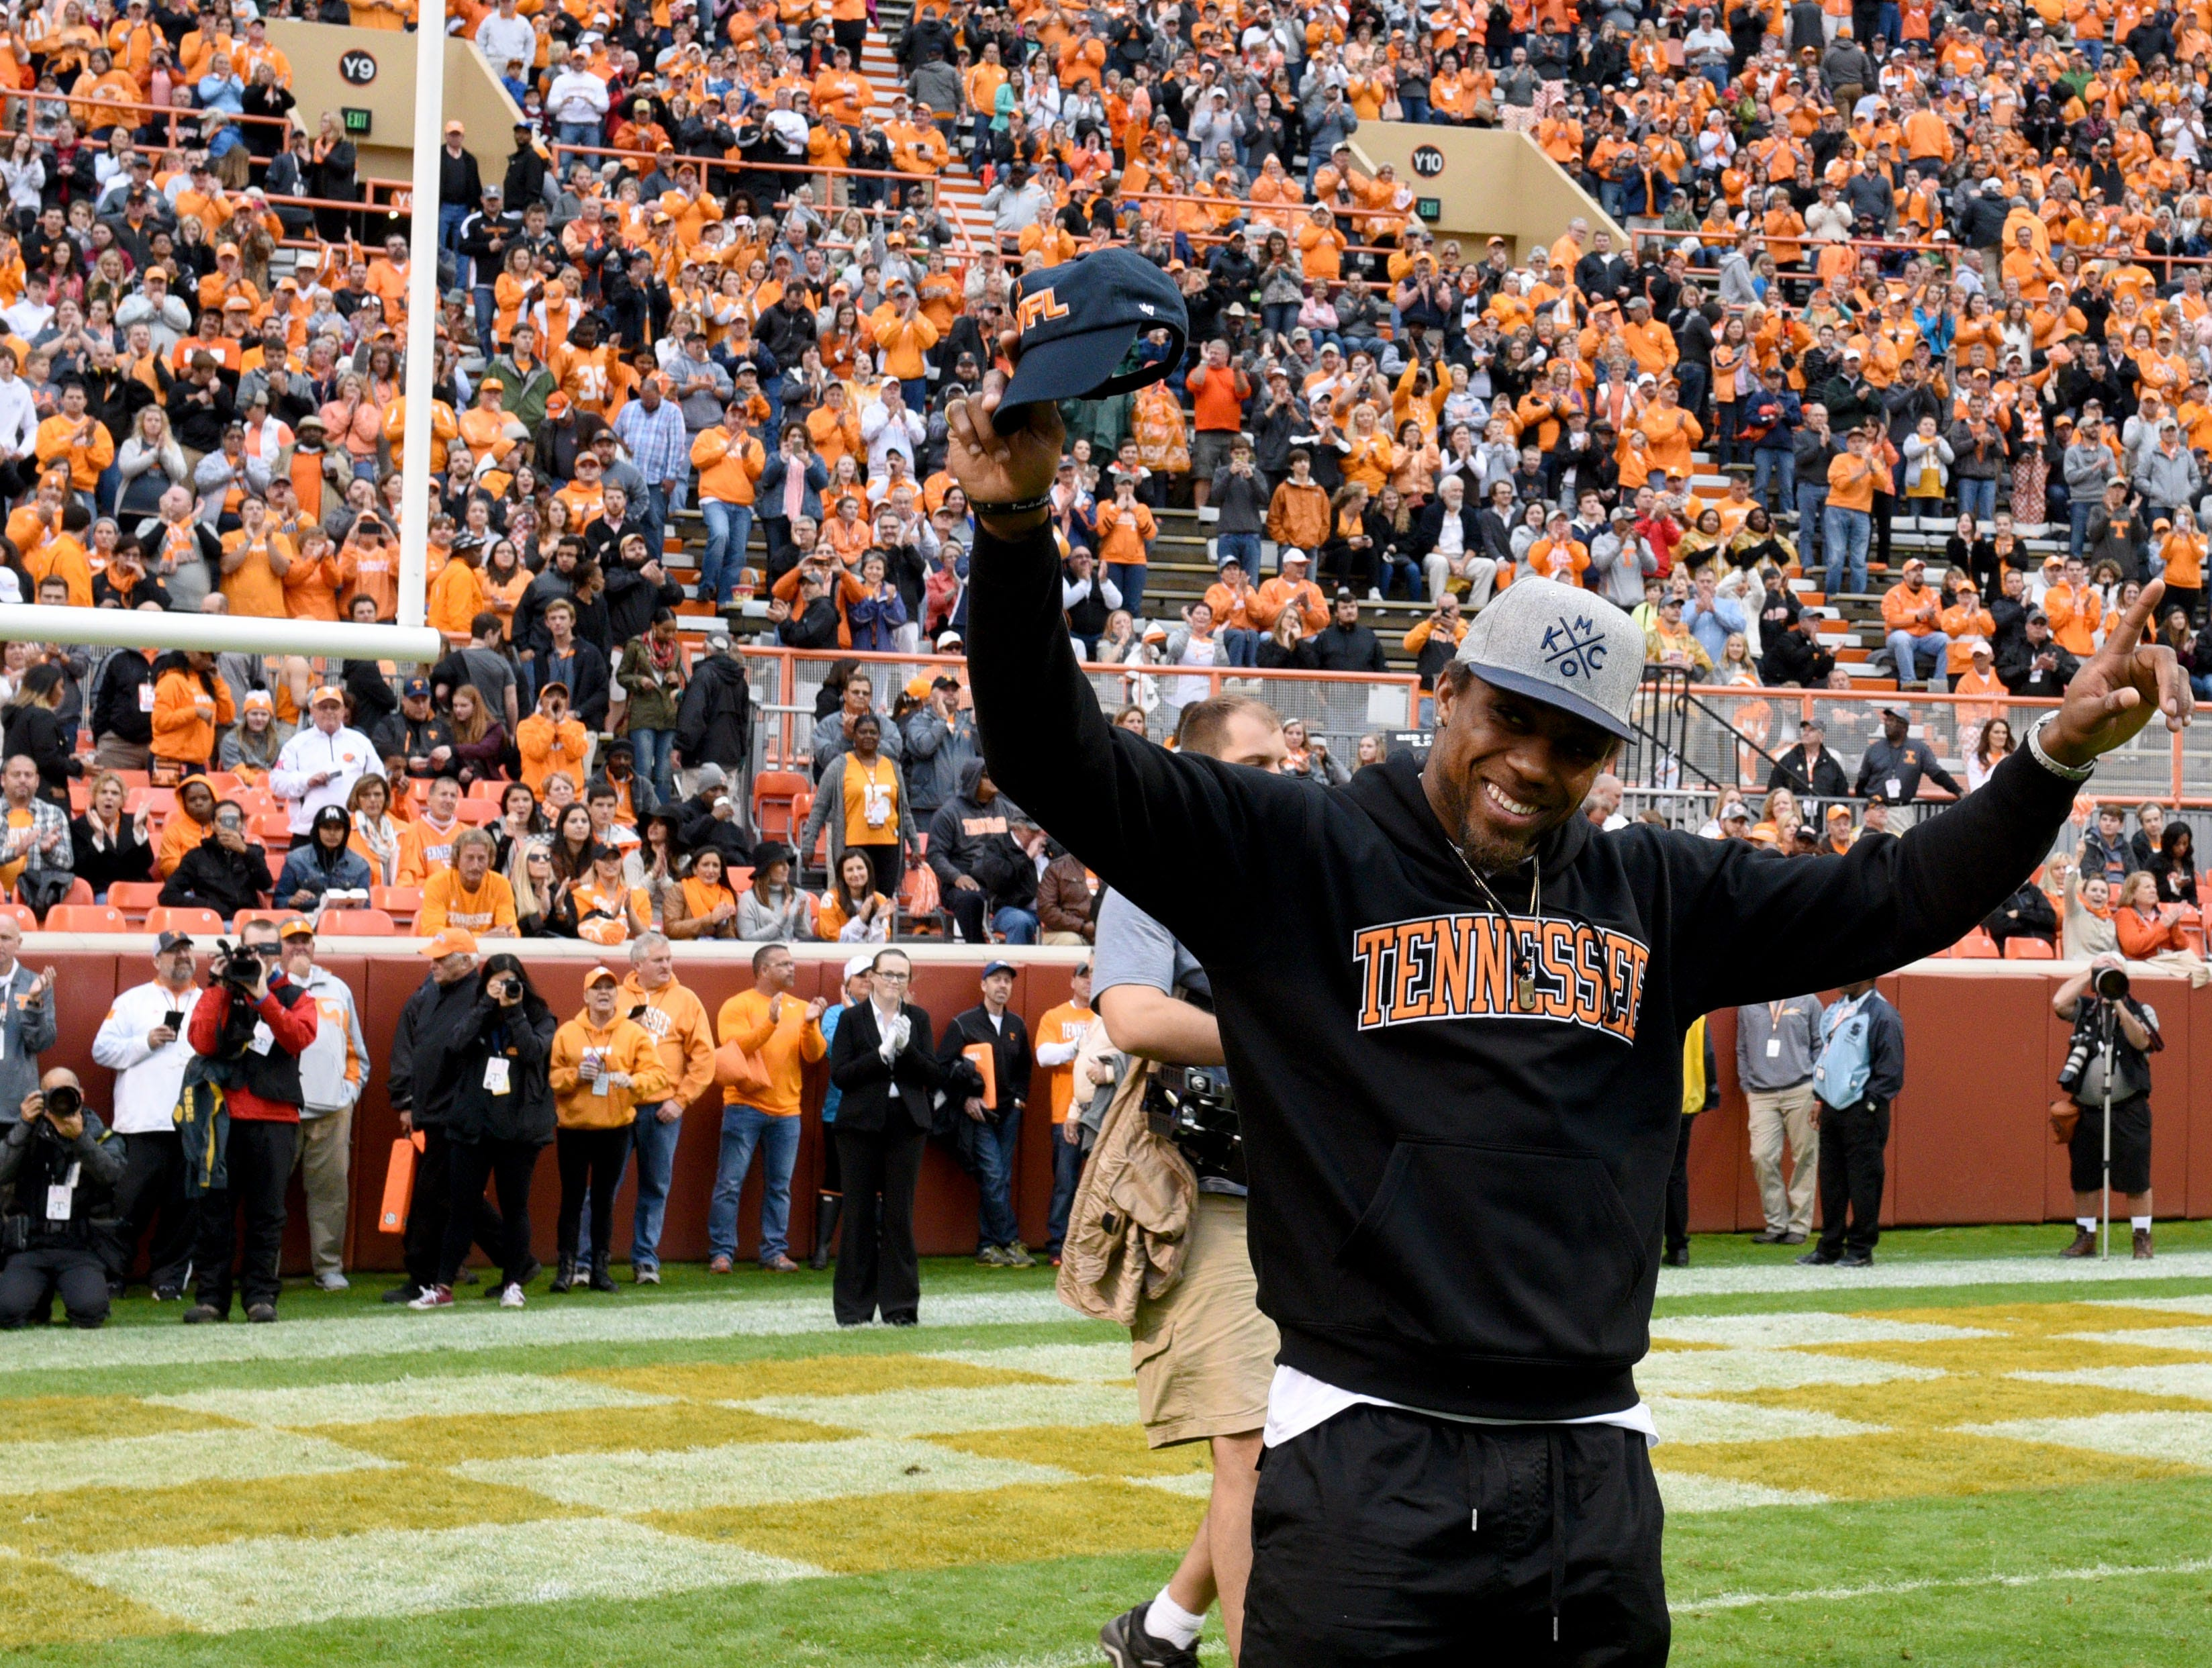 Kansas City Chief and former University of Tennessee football player Eric Berry is recognized as the Legend of the Game at Neyland Stadium in Knoxville, Tenn. on Saturday, Nov. 7, 2015.